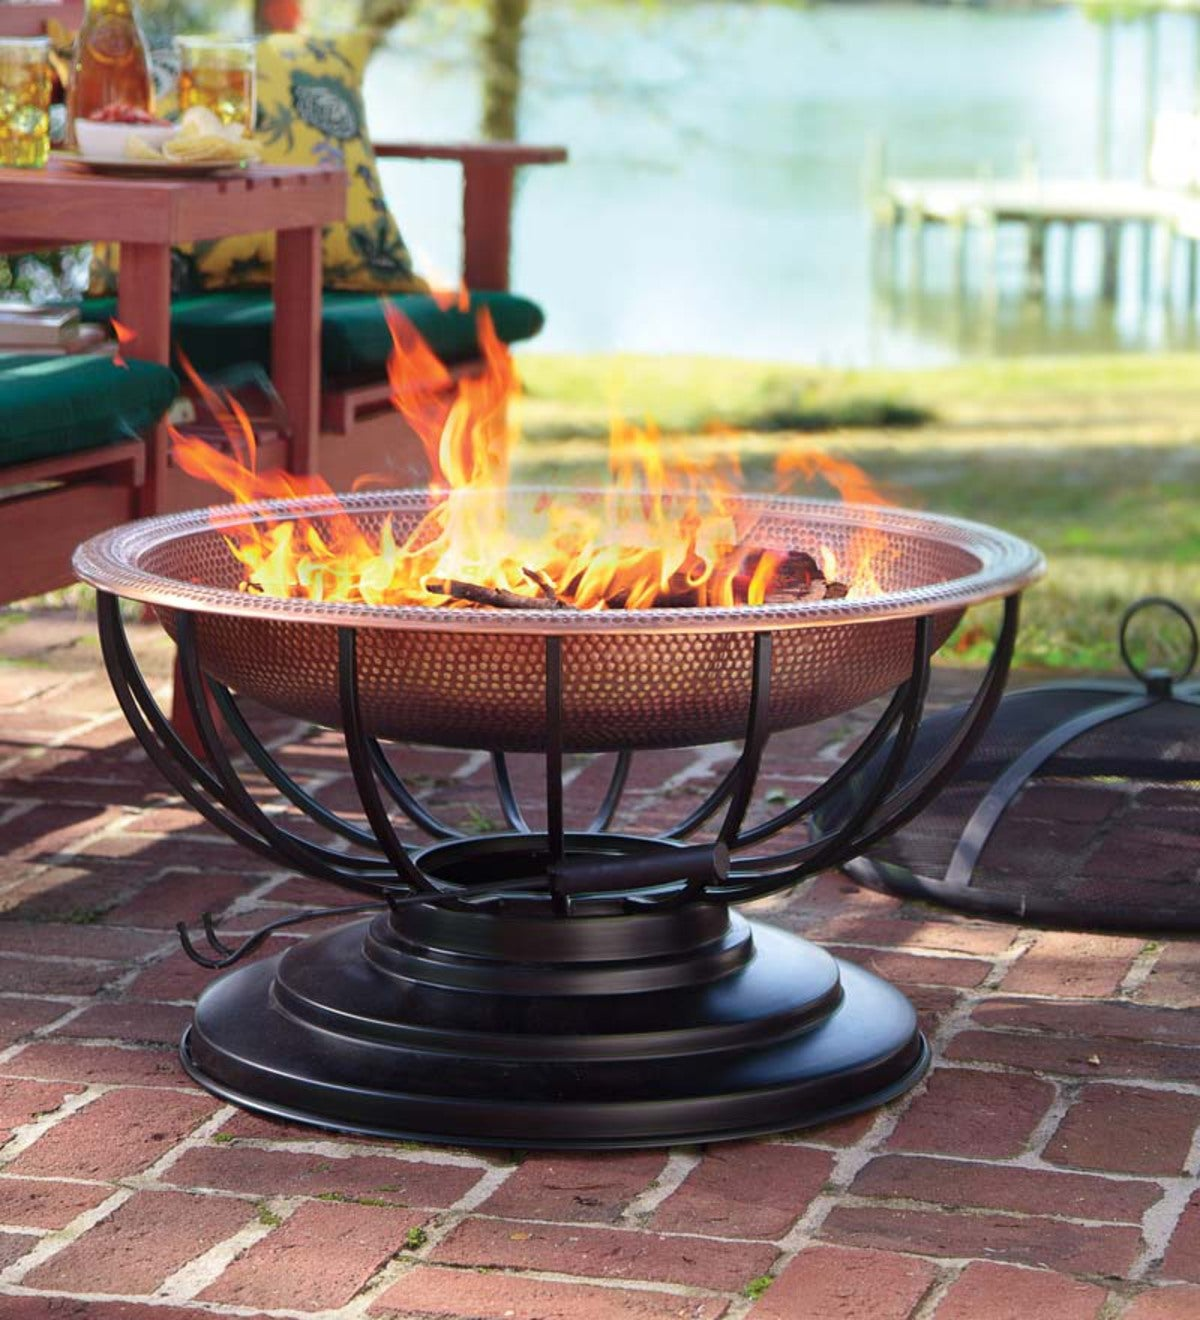 Hammered Copper Fire Pit With Lid Converts To Table Plowhearth